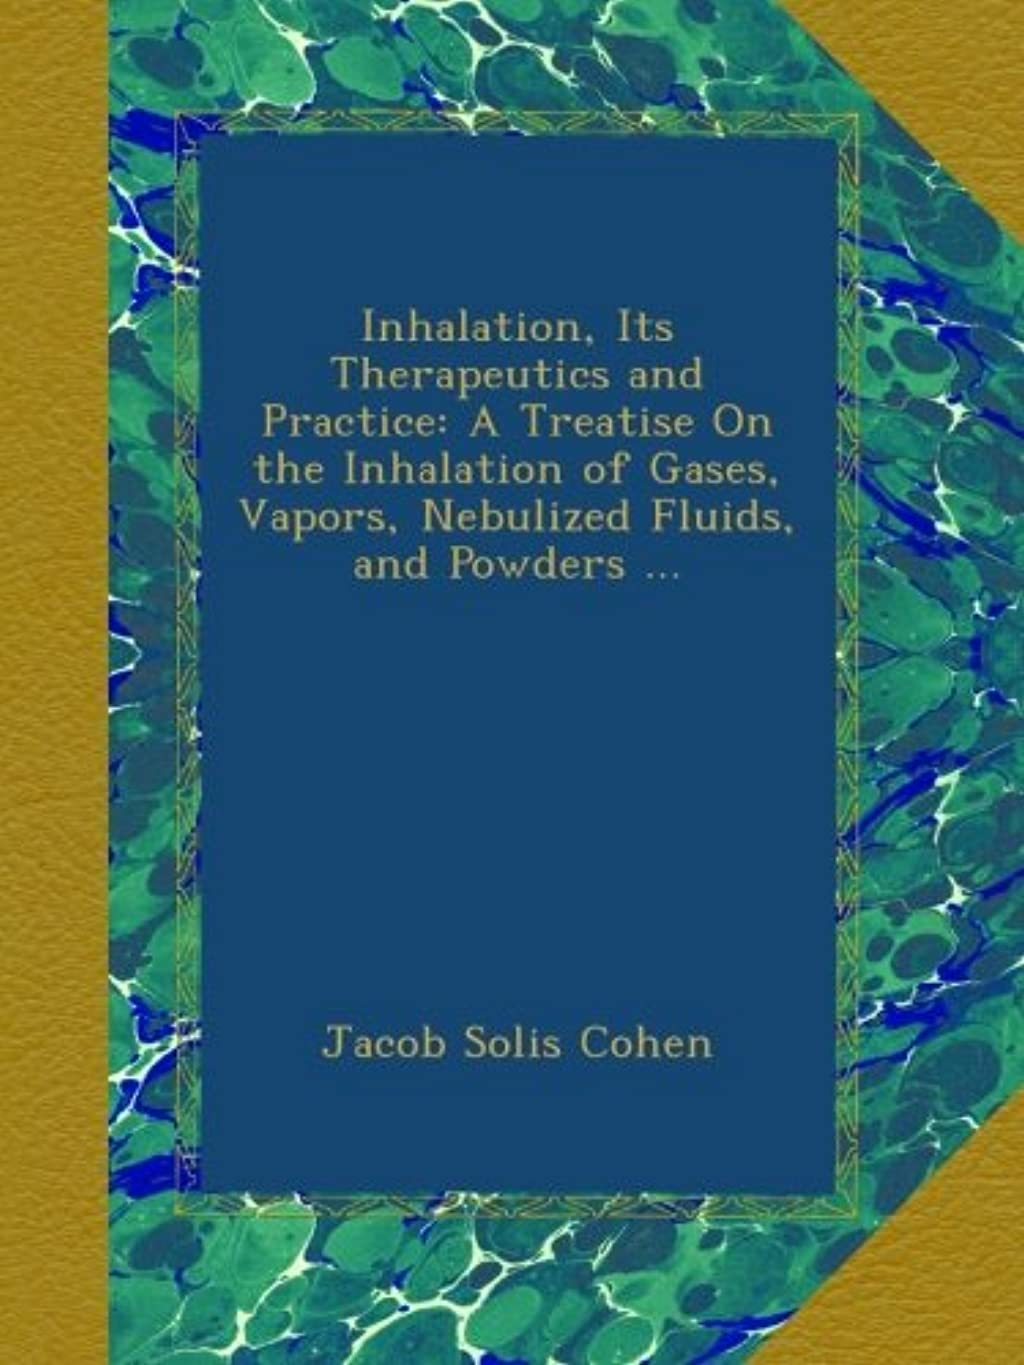 Inhalation, Its Therapeutics and Practice: A Treatise On the Inhalation of Gases, Vapors, Nebulized Fluids, and Powders ...